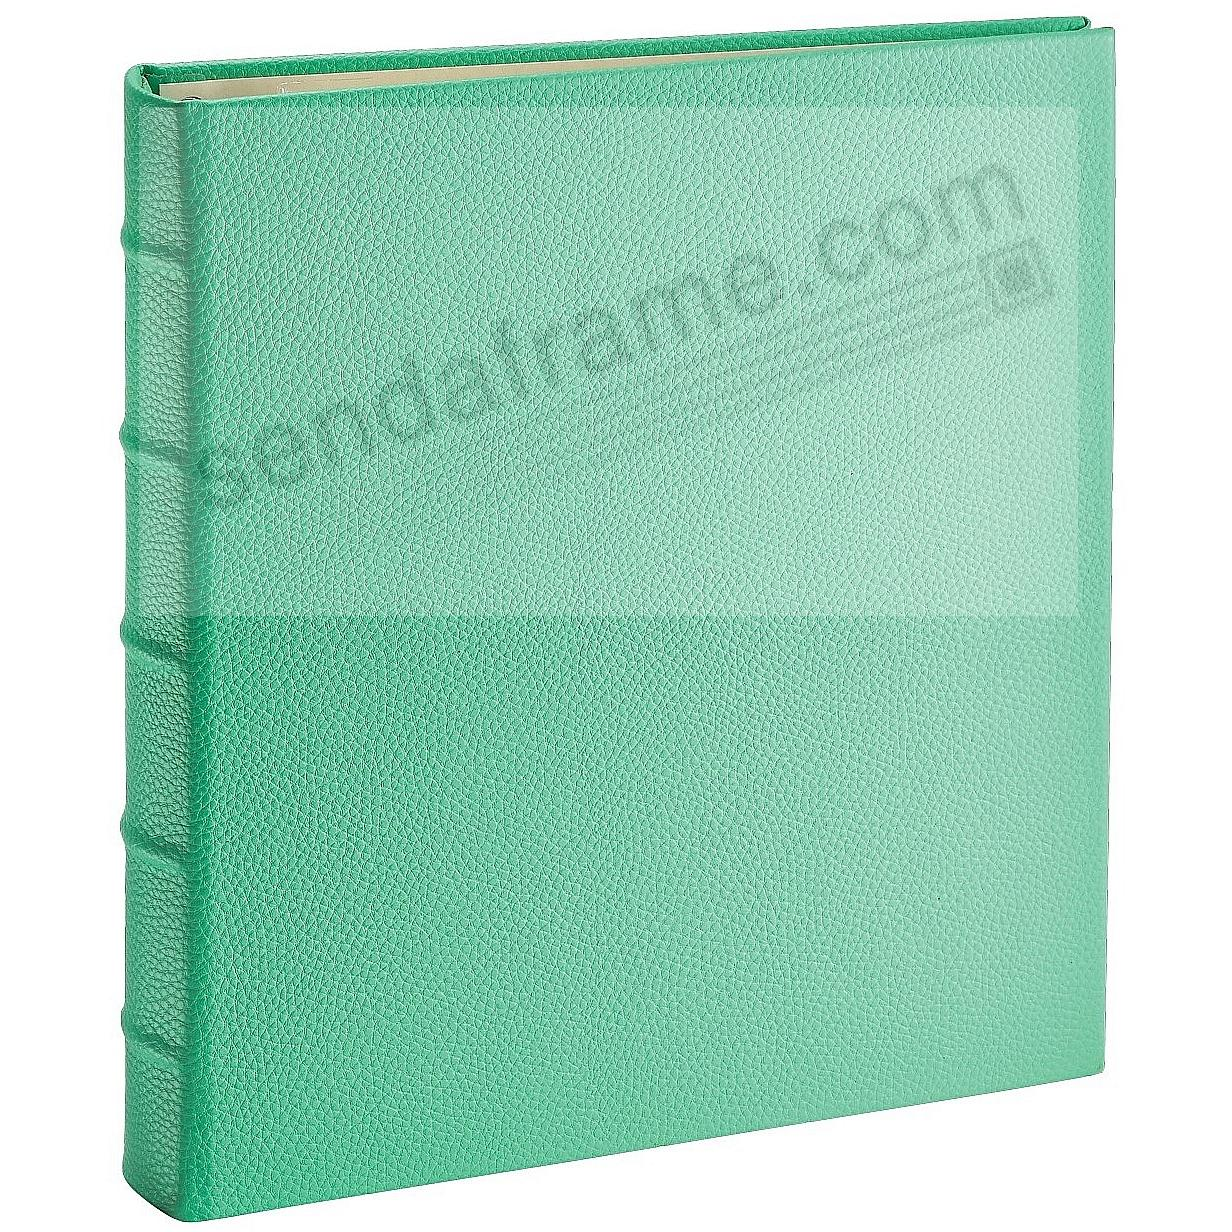 Post Impressions™ System standard 3-Ring Pebble-Grain Emerald Eco-Leather binder (unfilled)